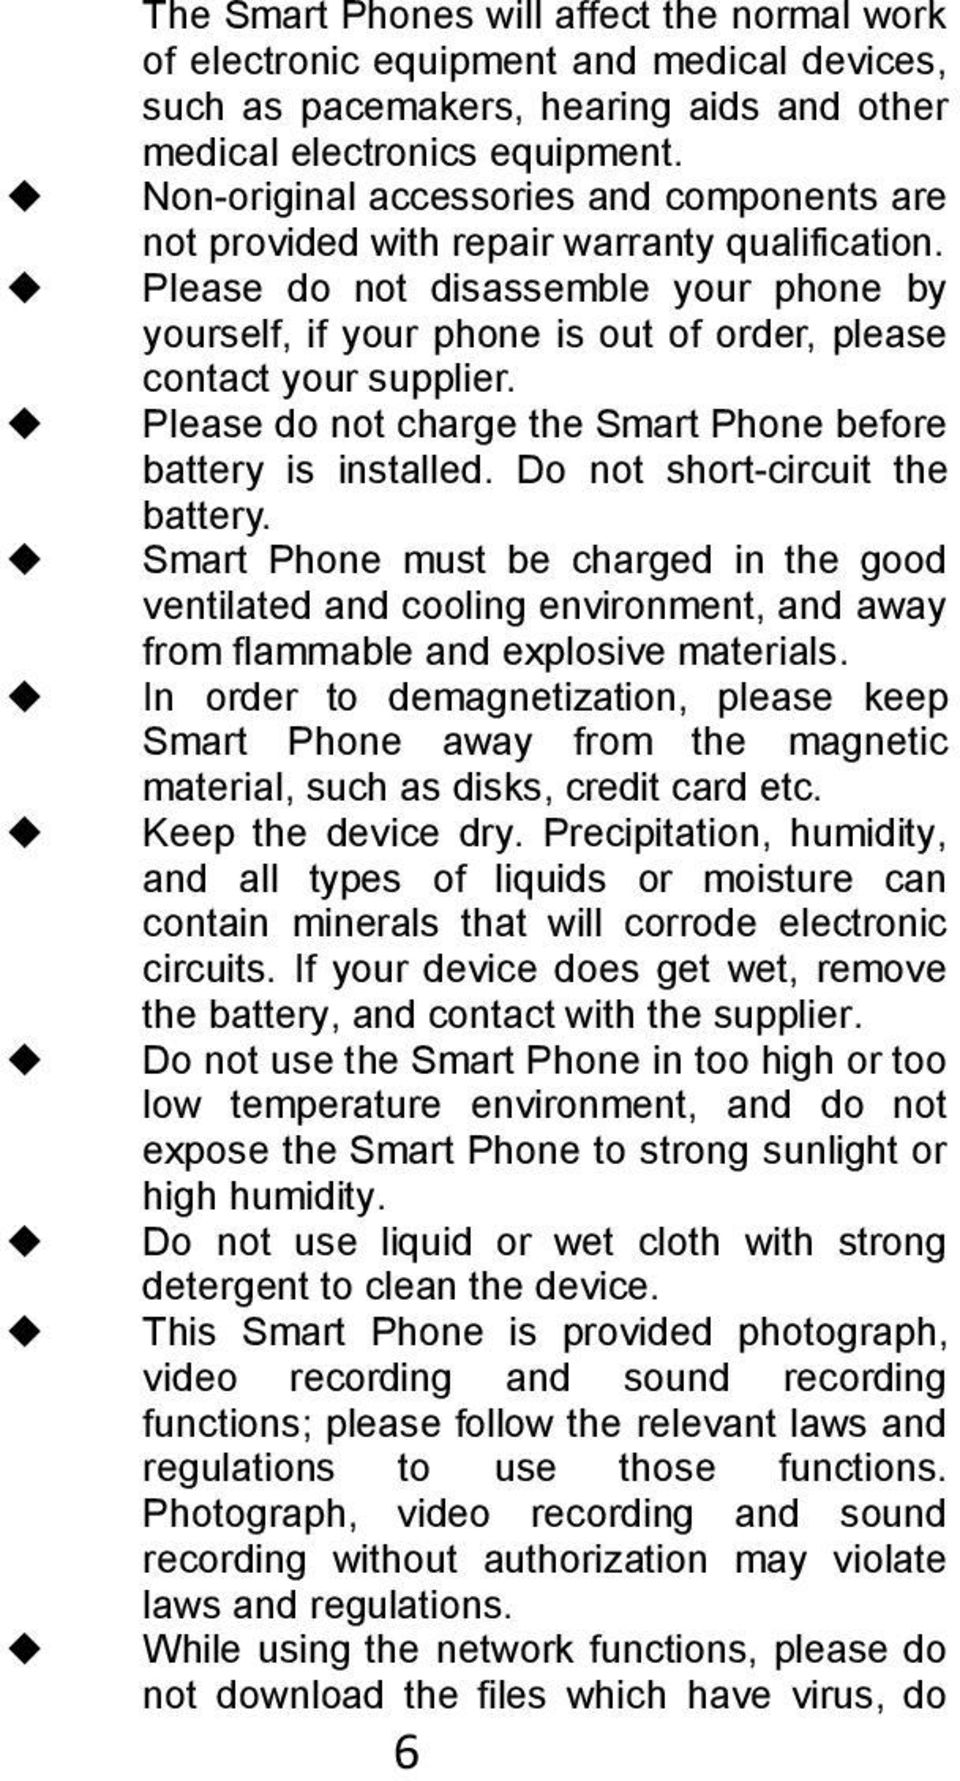 Please do not disassemble your phone by yourself, if your phone is out of order, please contact your supplier. Please do not charge the Smart Phone before battery is installed.